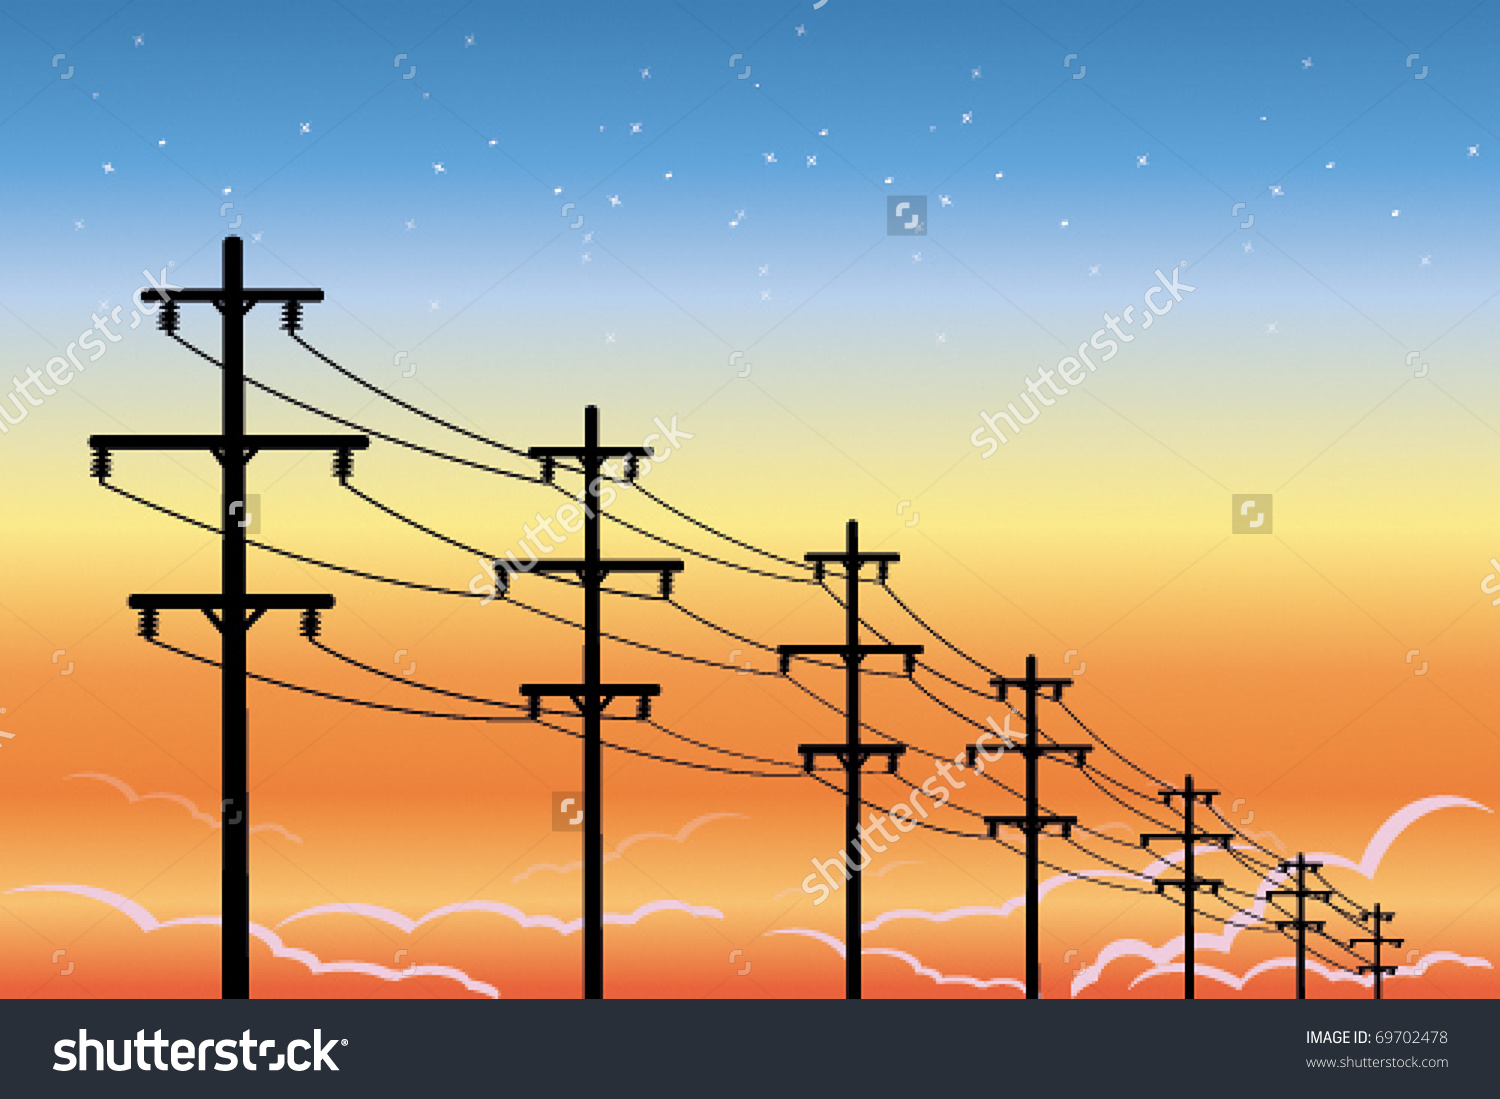 High Voltage Power Lines Stock Vector 69702478.